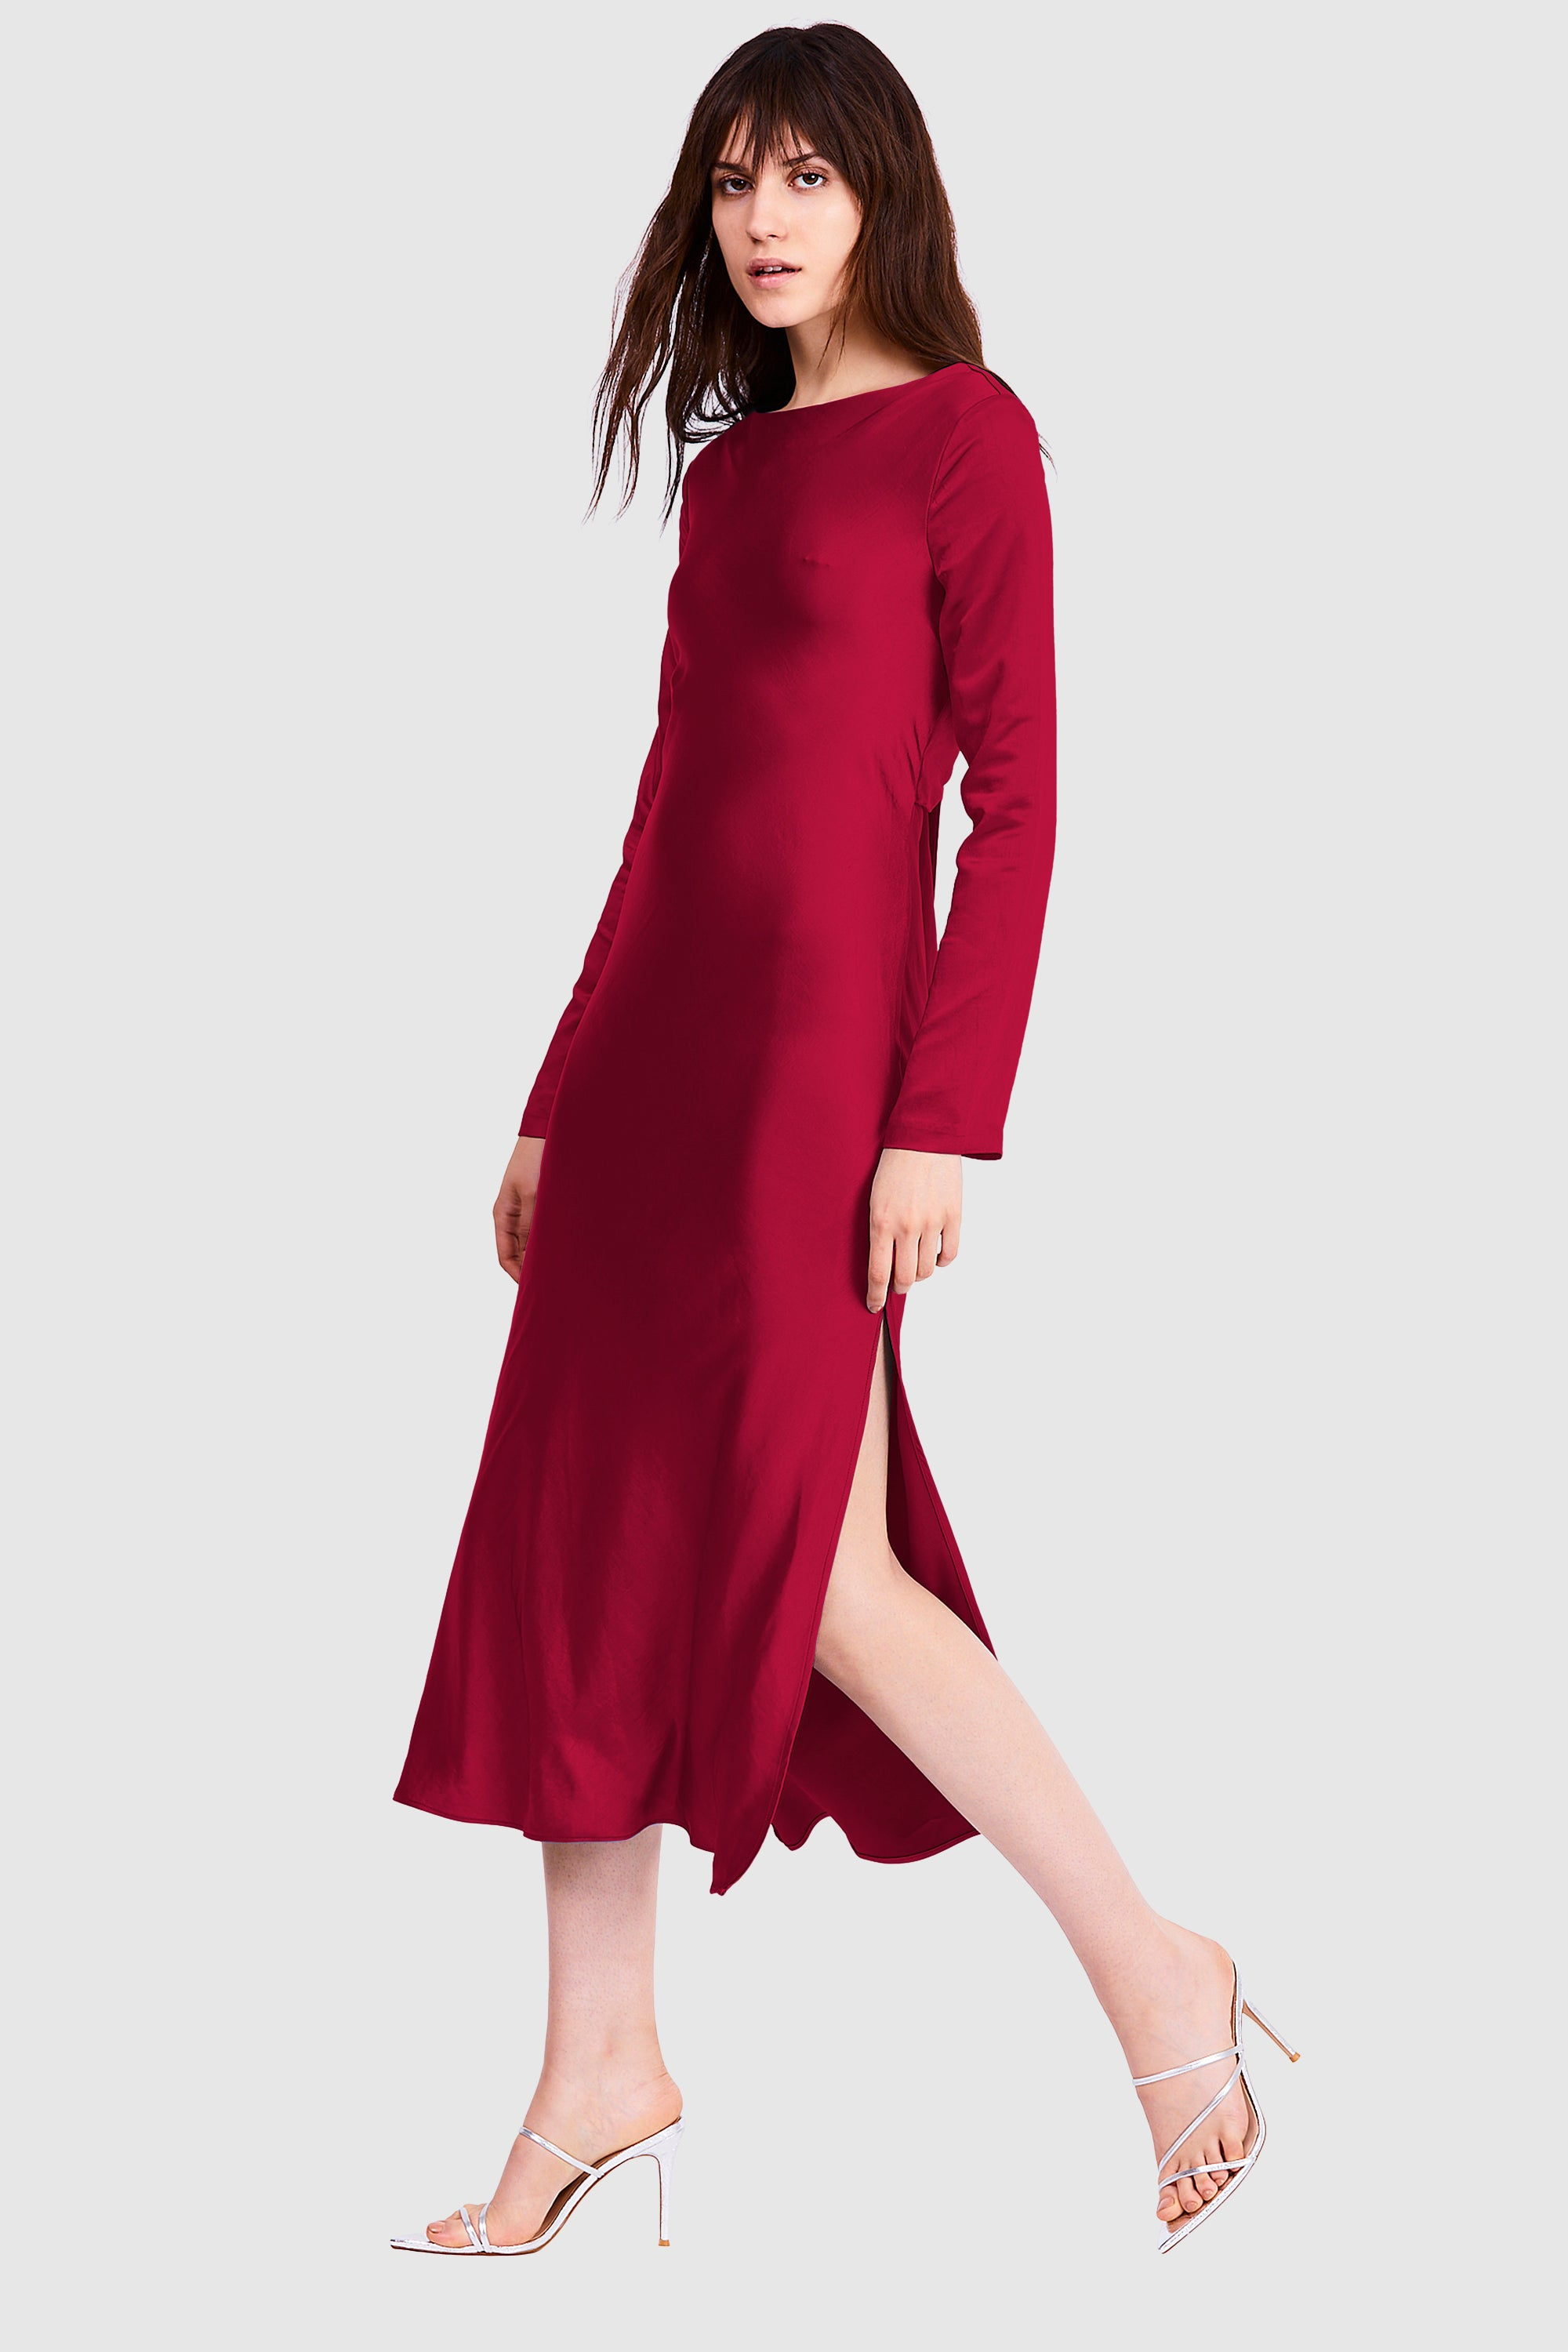 TIE BACK MAXI  BIAS DRESS | RUBY